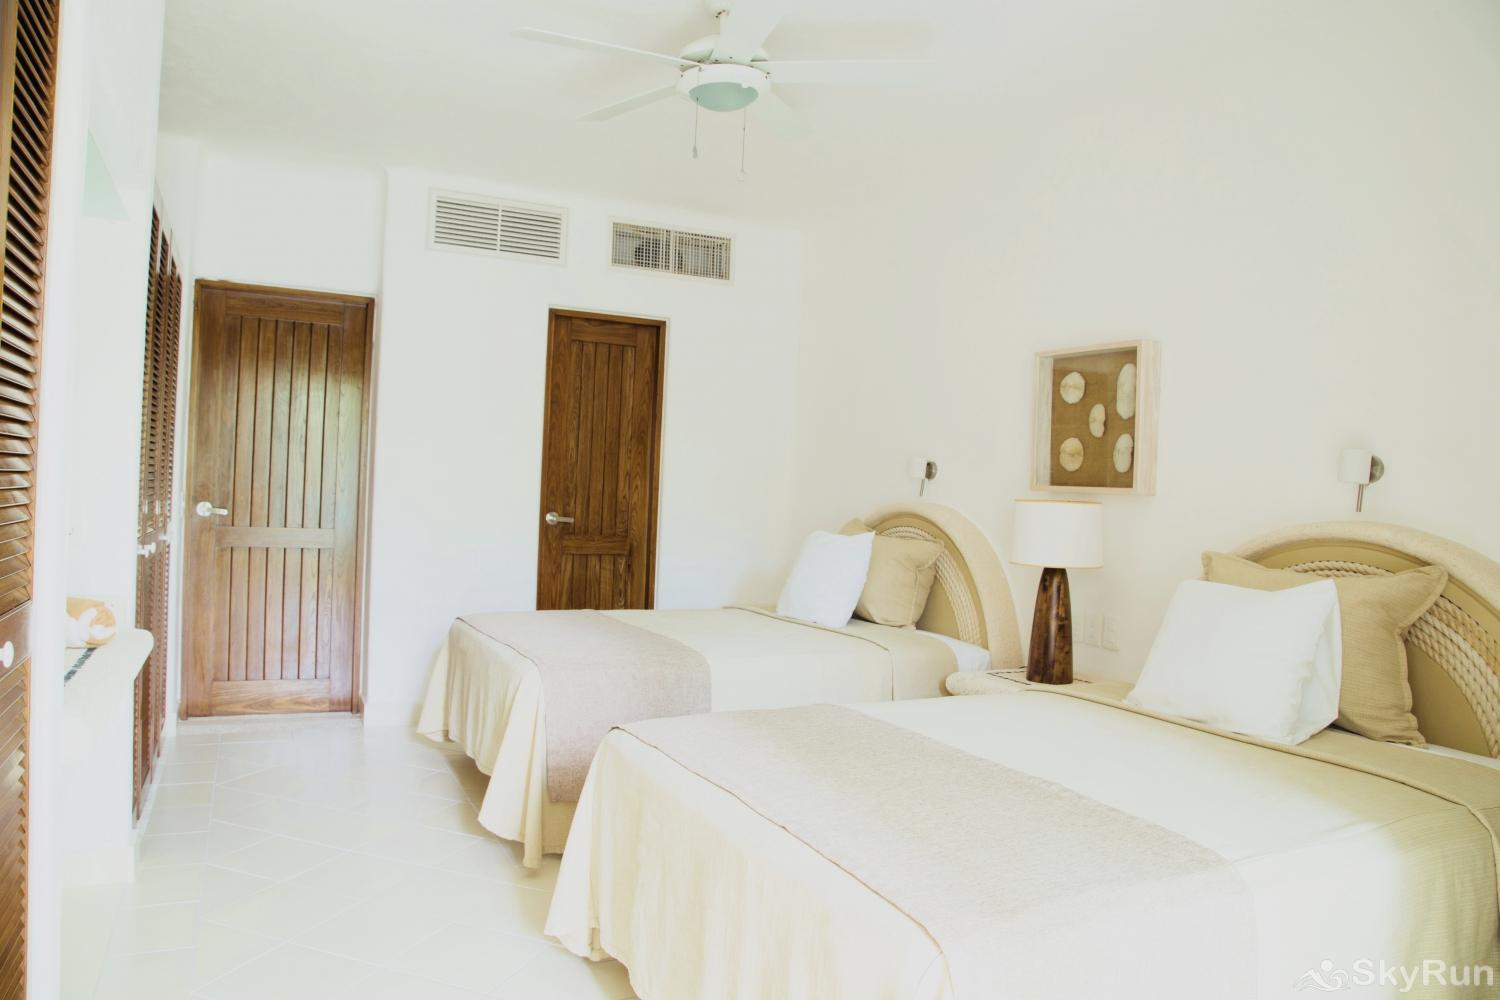 Beachfront Villa at Akumal Bay 210B 2bedroom 2nd floor 2nd Bedroom 2 Queen